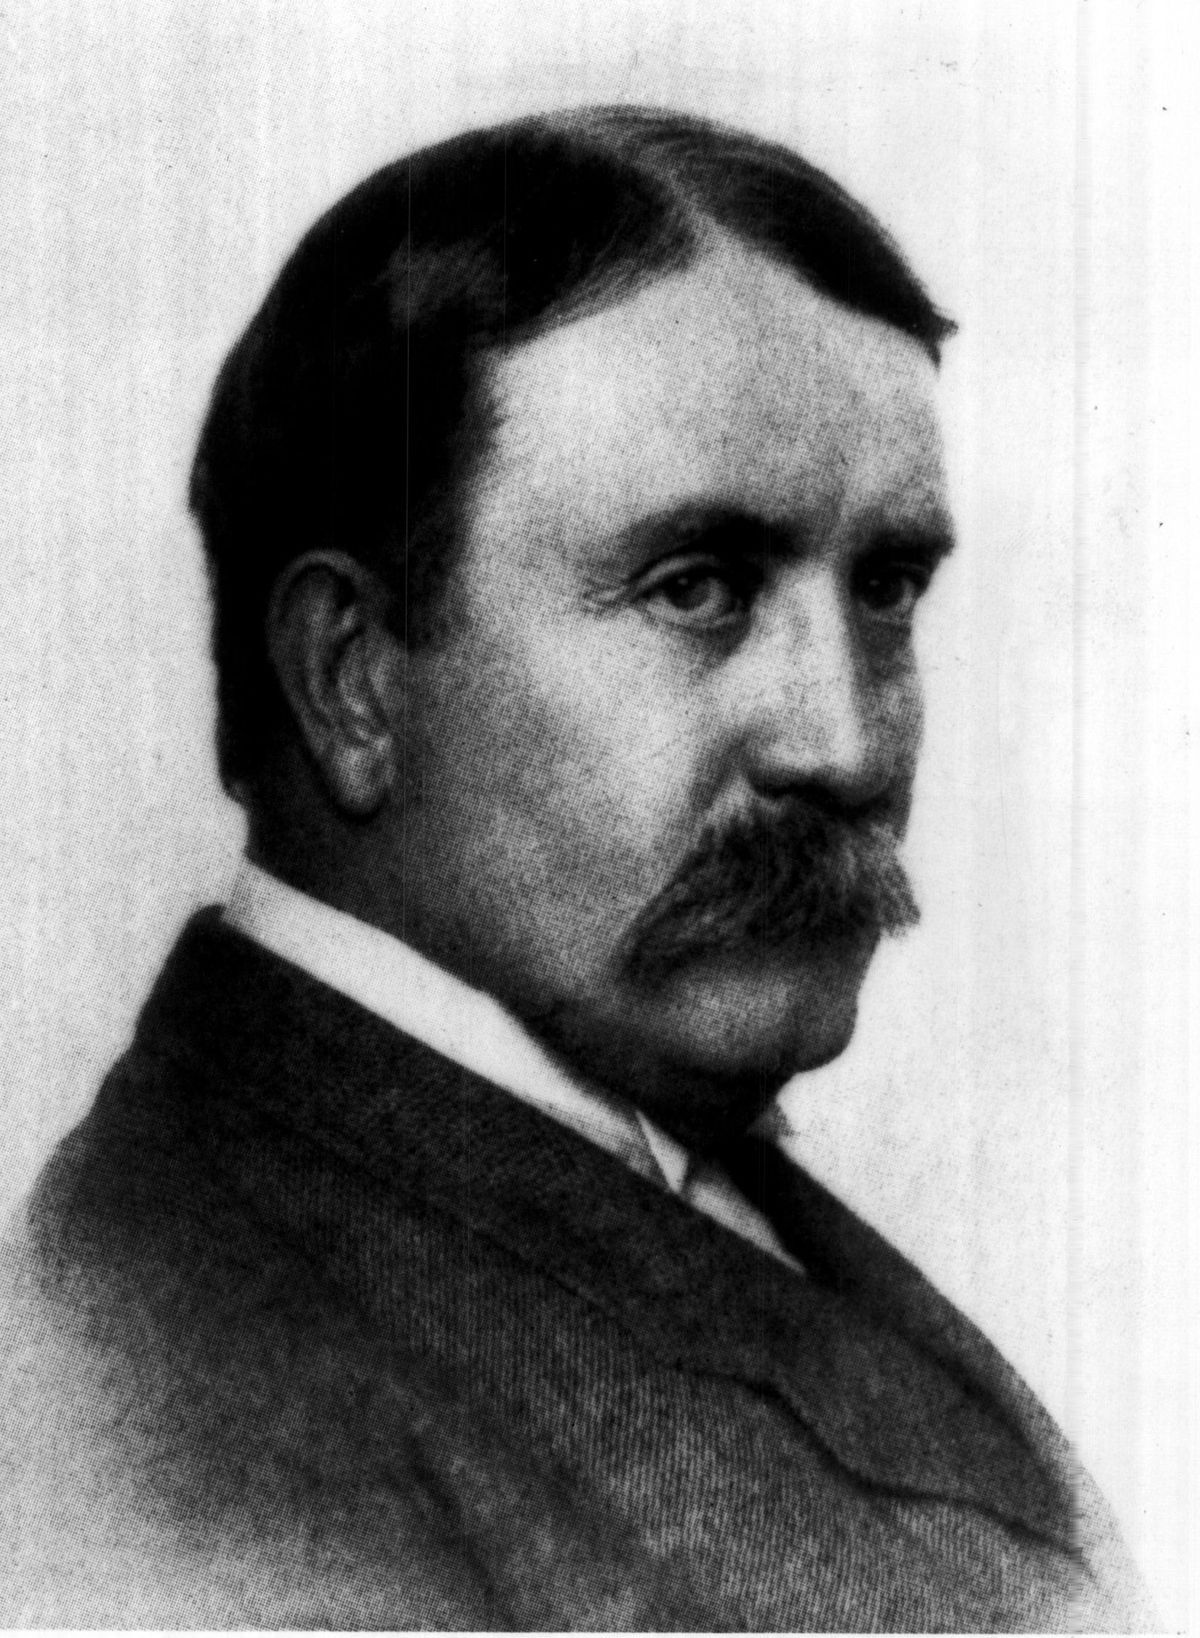 Architect and urban planner Daniel Burnham thought cities could be orderly and beautiful. He tested his theories as chief planner of the 1893 World's Fair and the 1909 Plan of Chicago.